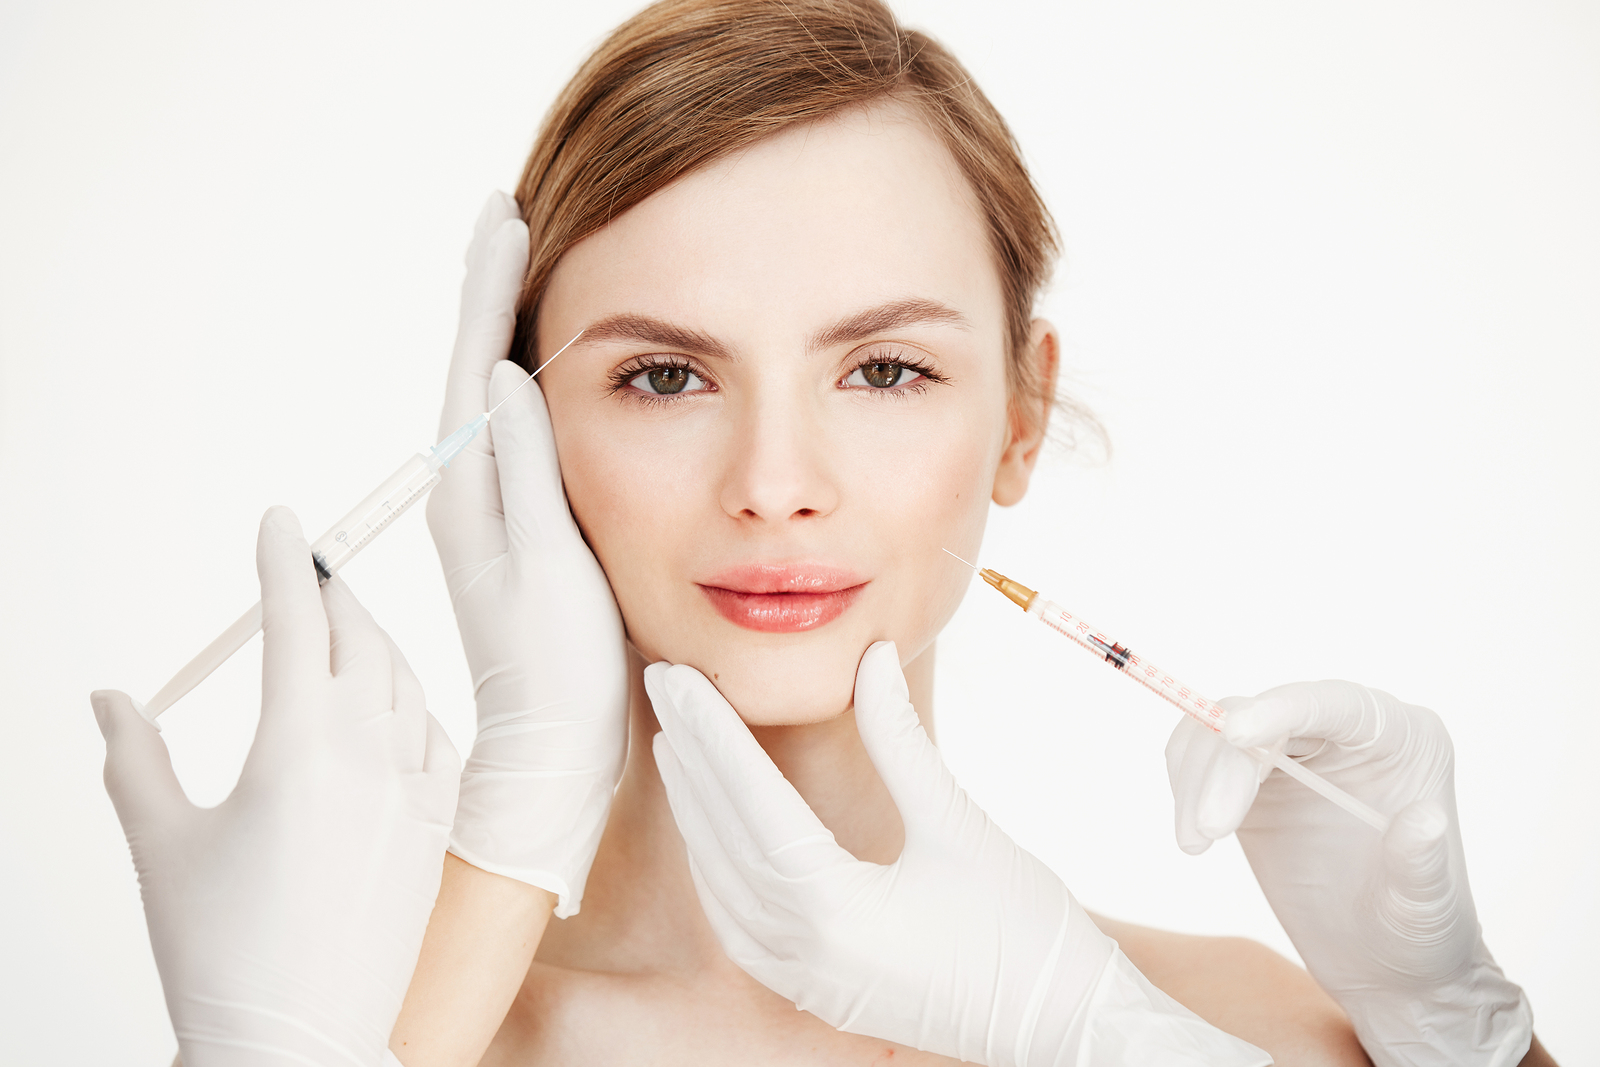 Botox injection for wrinkles softening or disappearing.